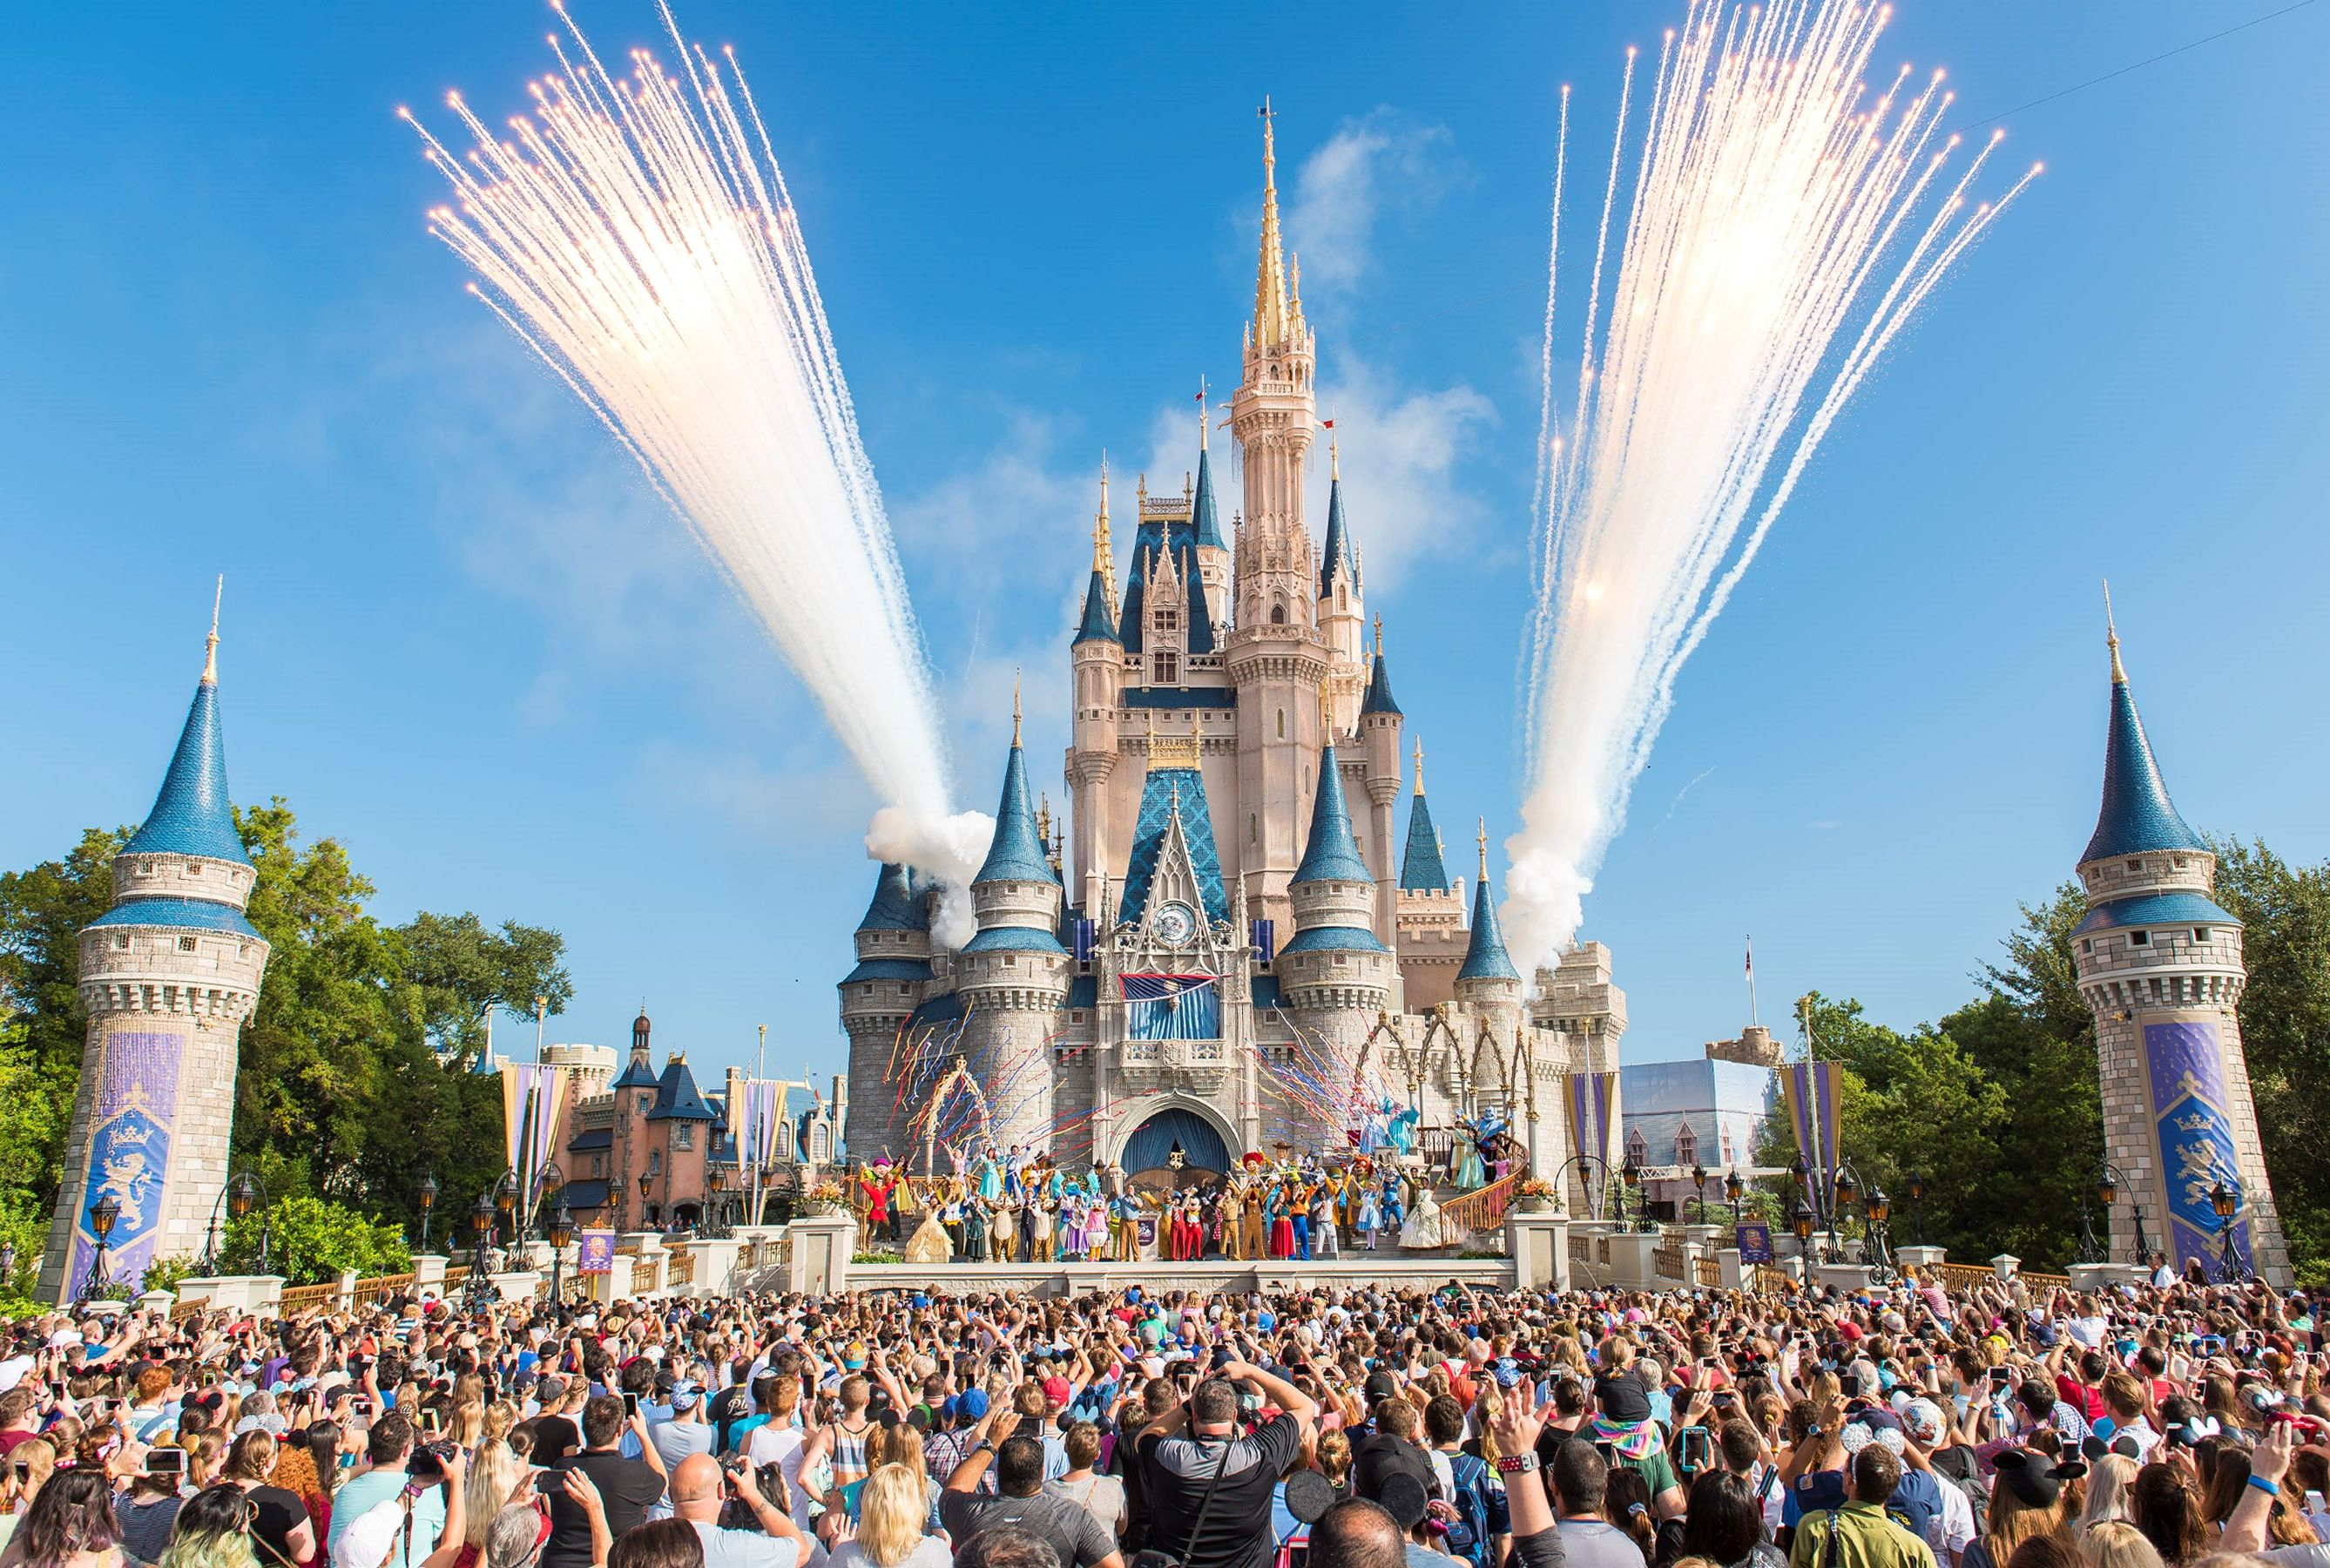 The Fascinating Reason Why There Are No Mosquitoes at Disney